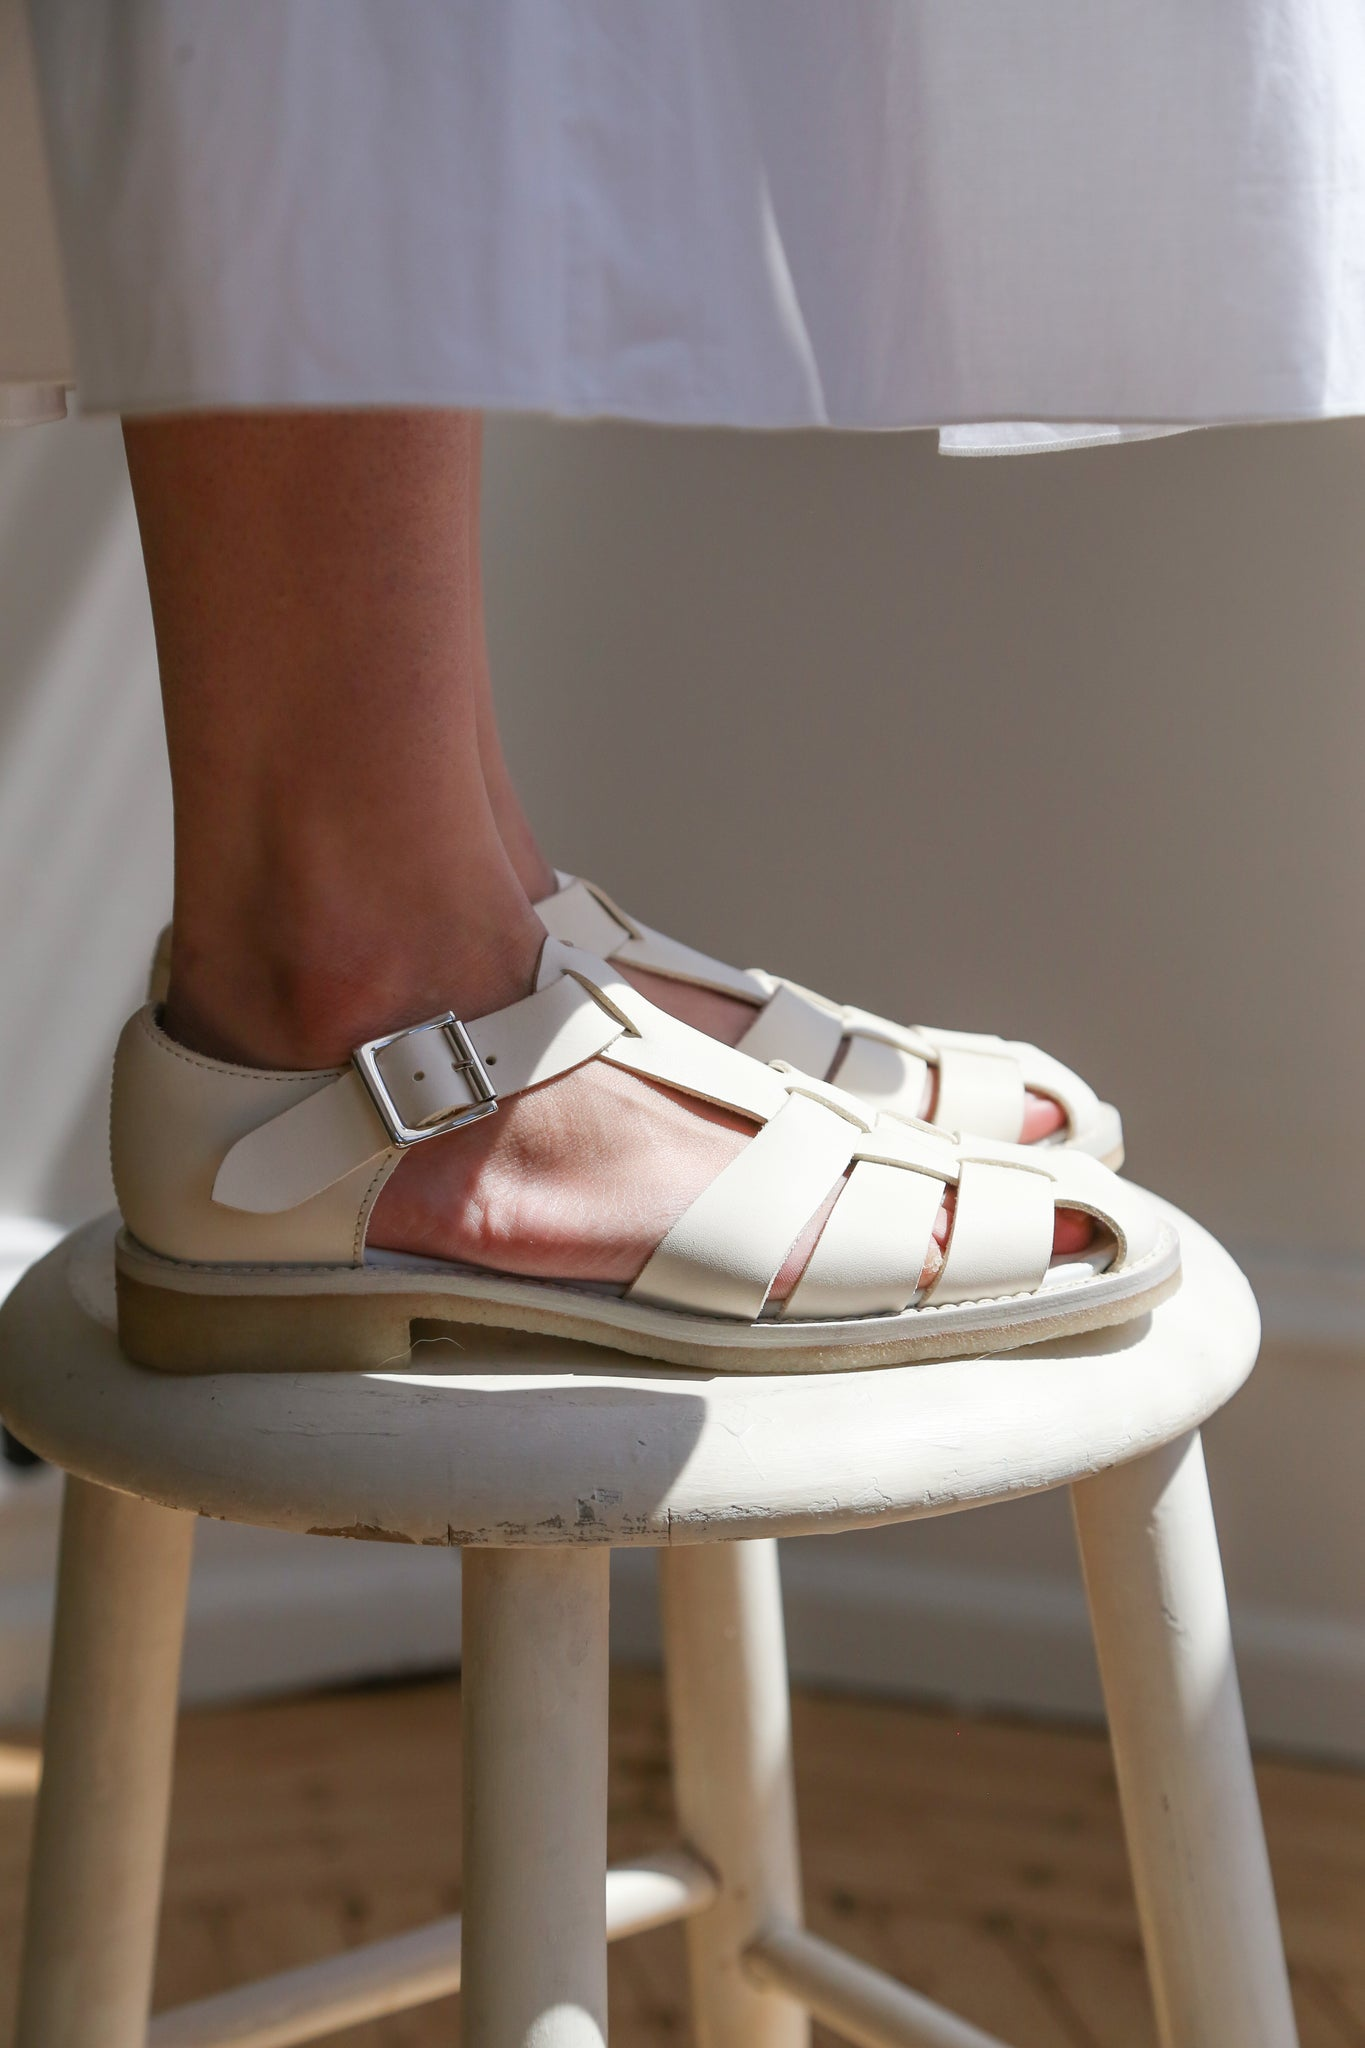 Arts & Science Gurkha Sandal in White